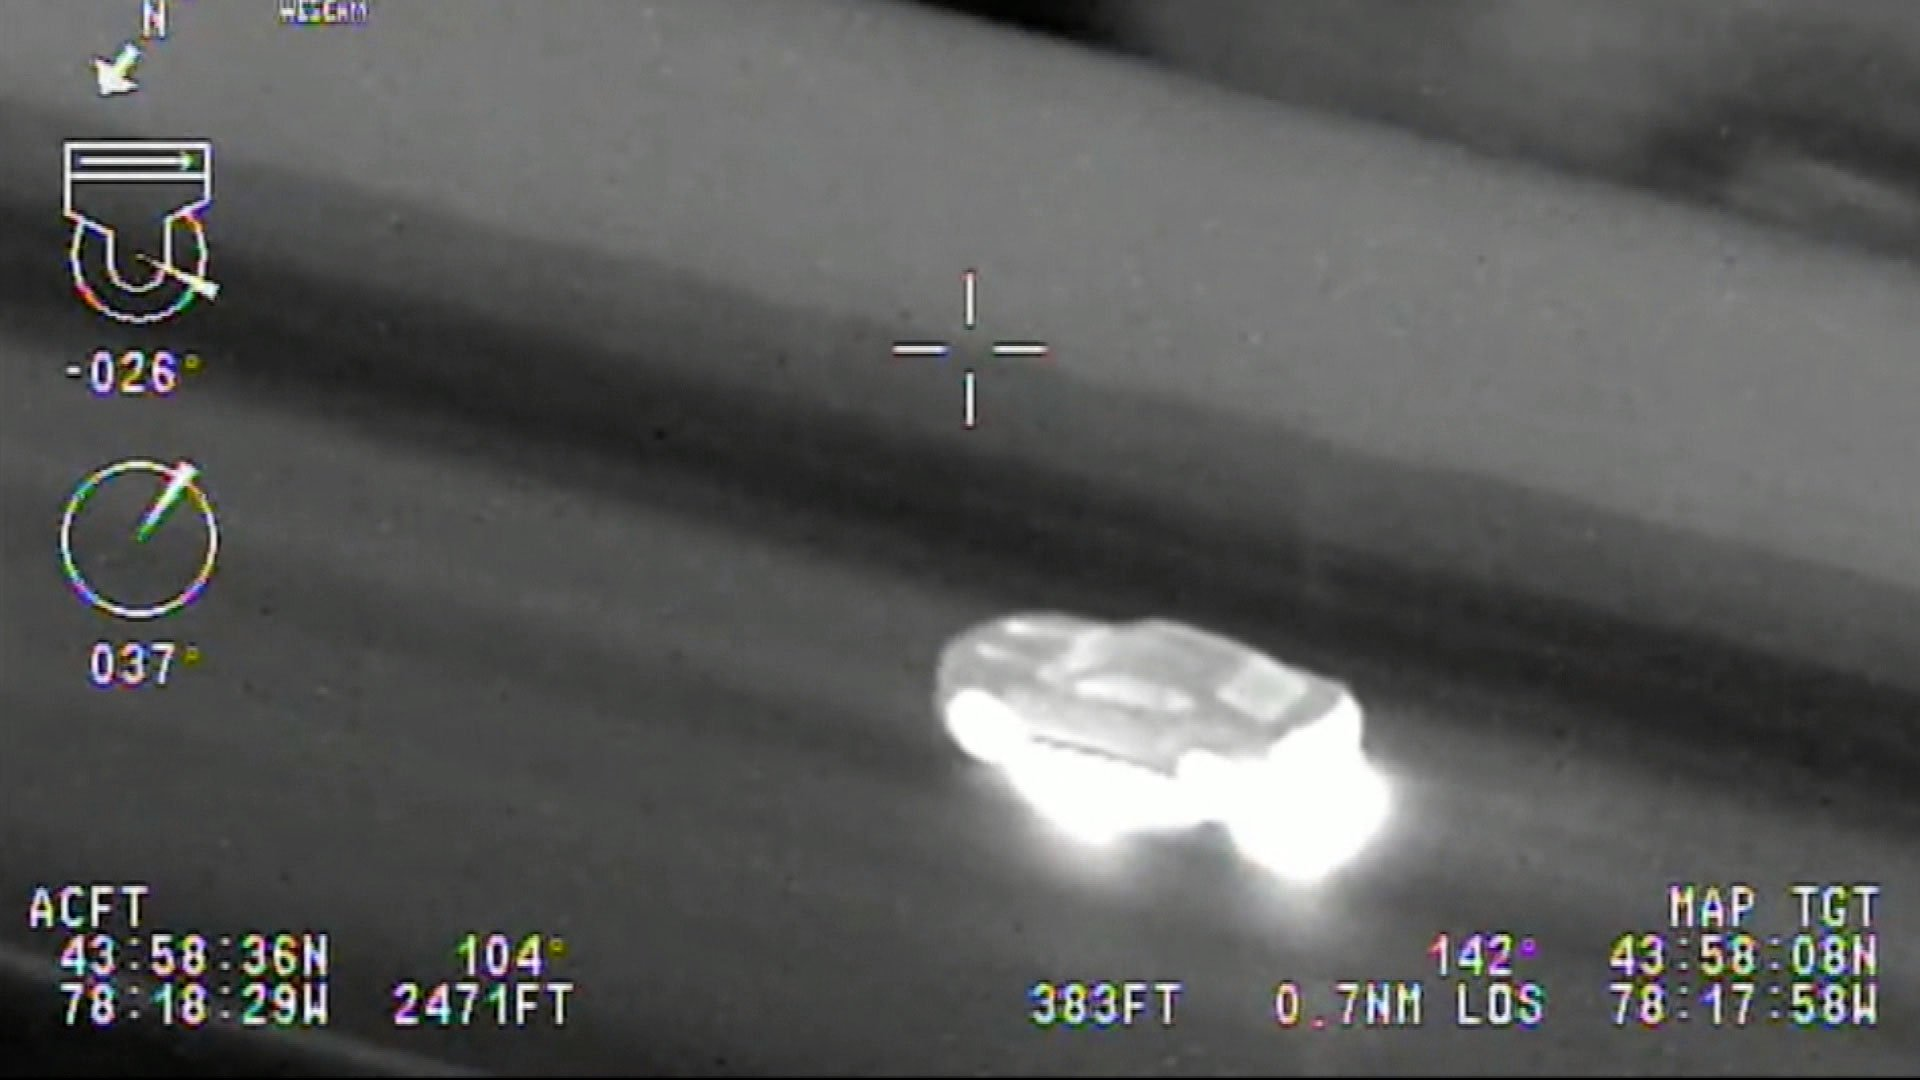 Suspect leads Durham police on longest-ever Ontario helicopter chase https://t.co/CWA9JF2rft https://t.co/lgIHD2O2vh